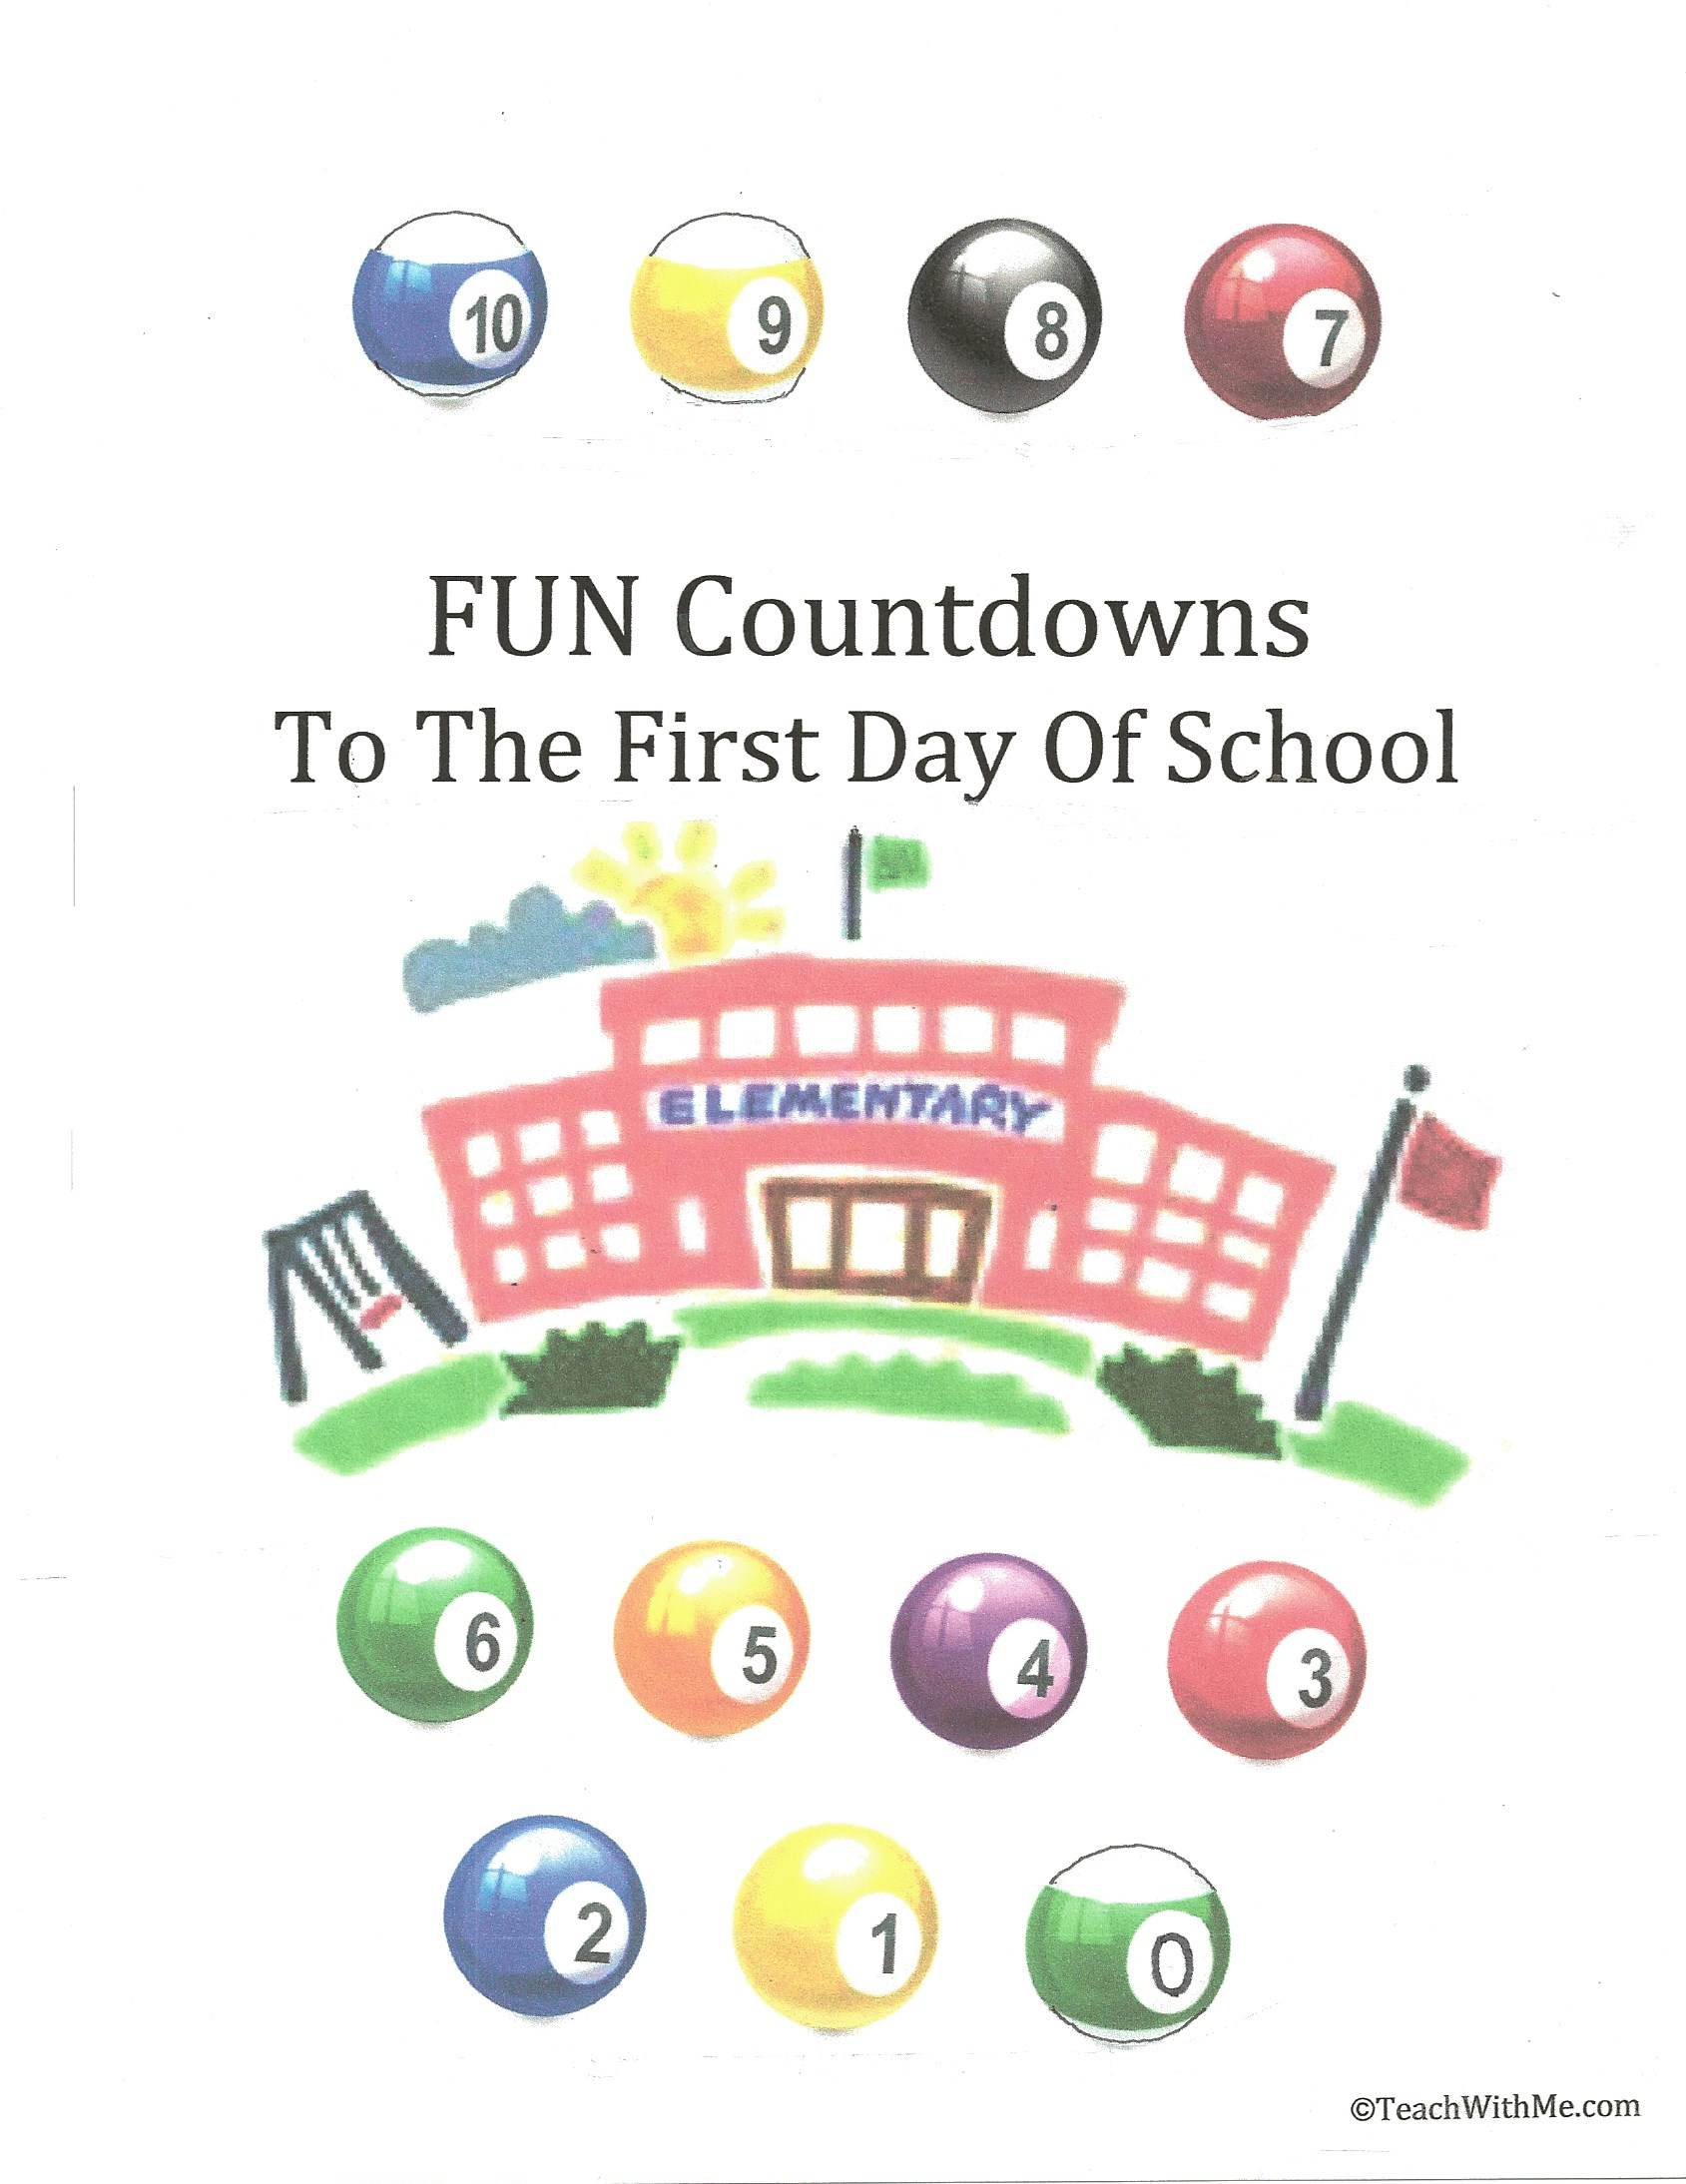 counting down to the first day of school, first day of school ideas, back to school ideas, ladybug art project, ladybug count down to the first day of school, paperchain countdown to the first day of school,